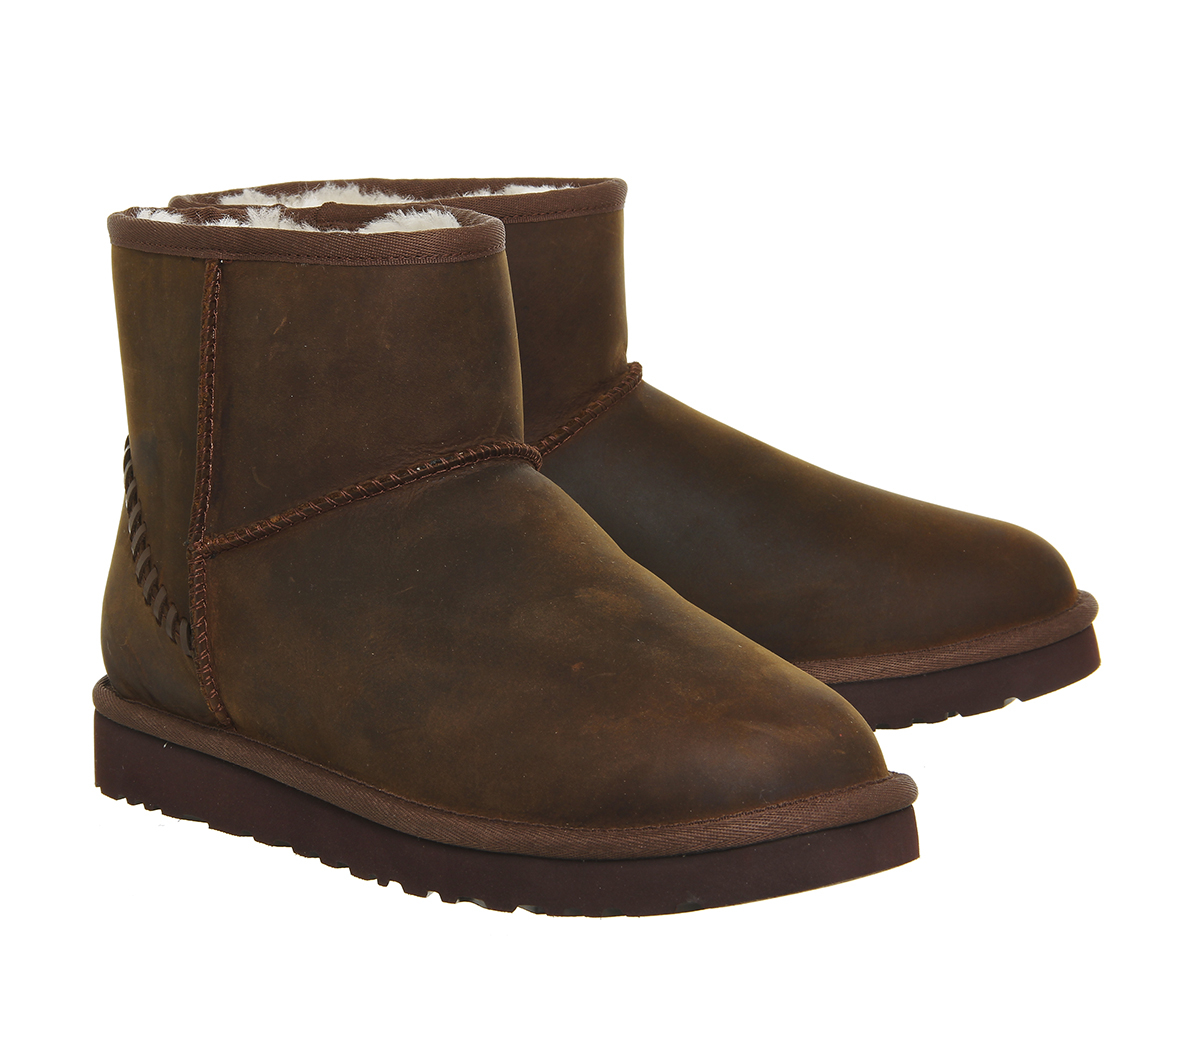 ugg classic mini deco boot in brown for men lyst. Black Bedroom Furniture Sets. Home Design Ideas